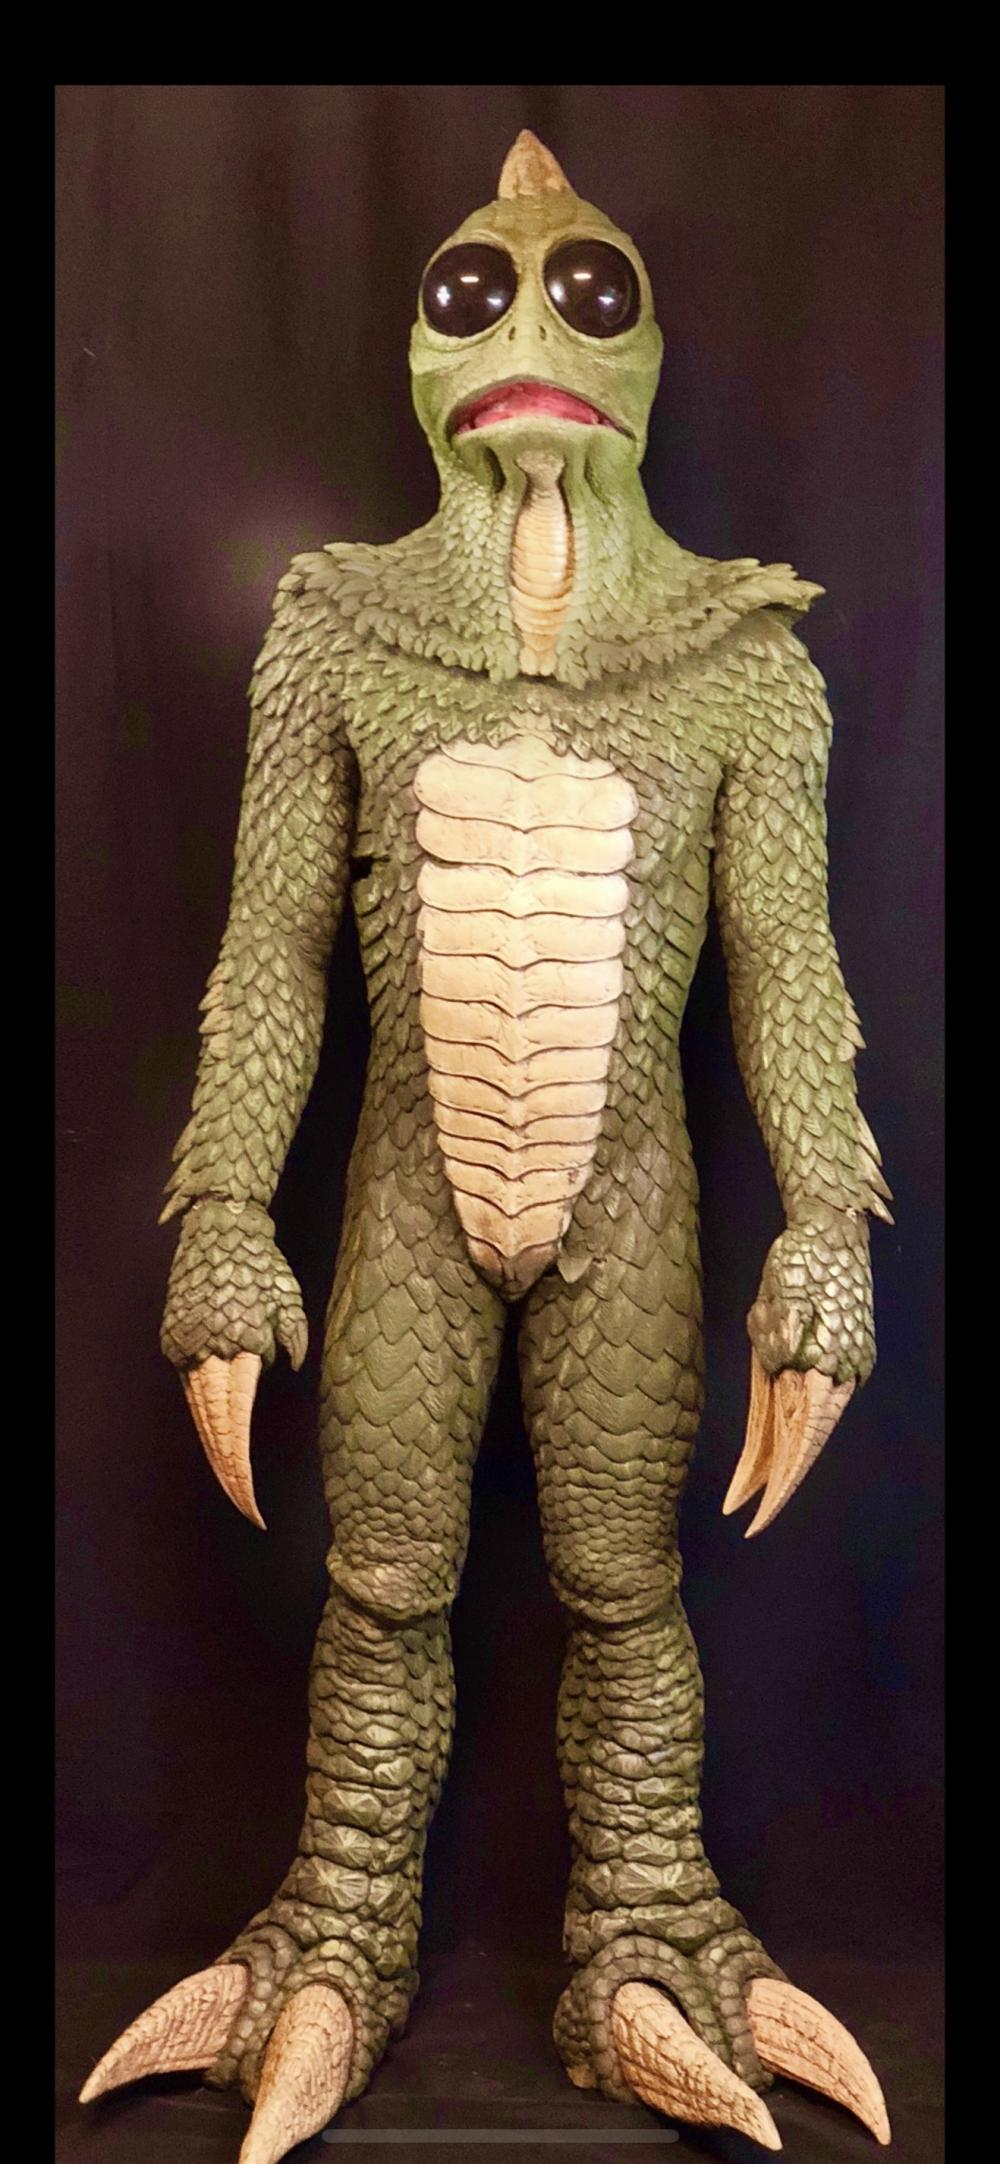 Land of the Lost (2009) - Complete Screen Used Sleestak Costume